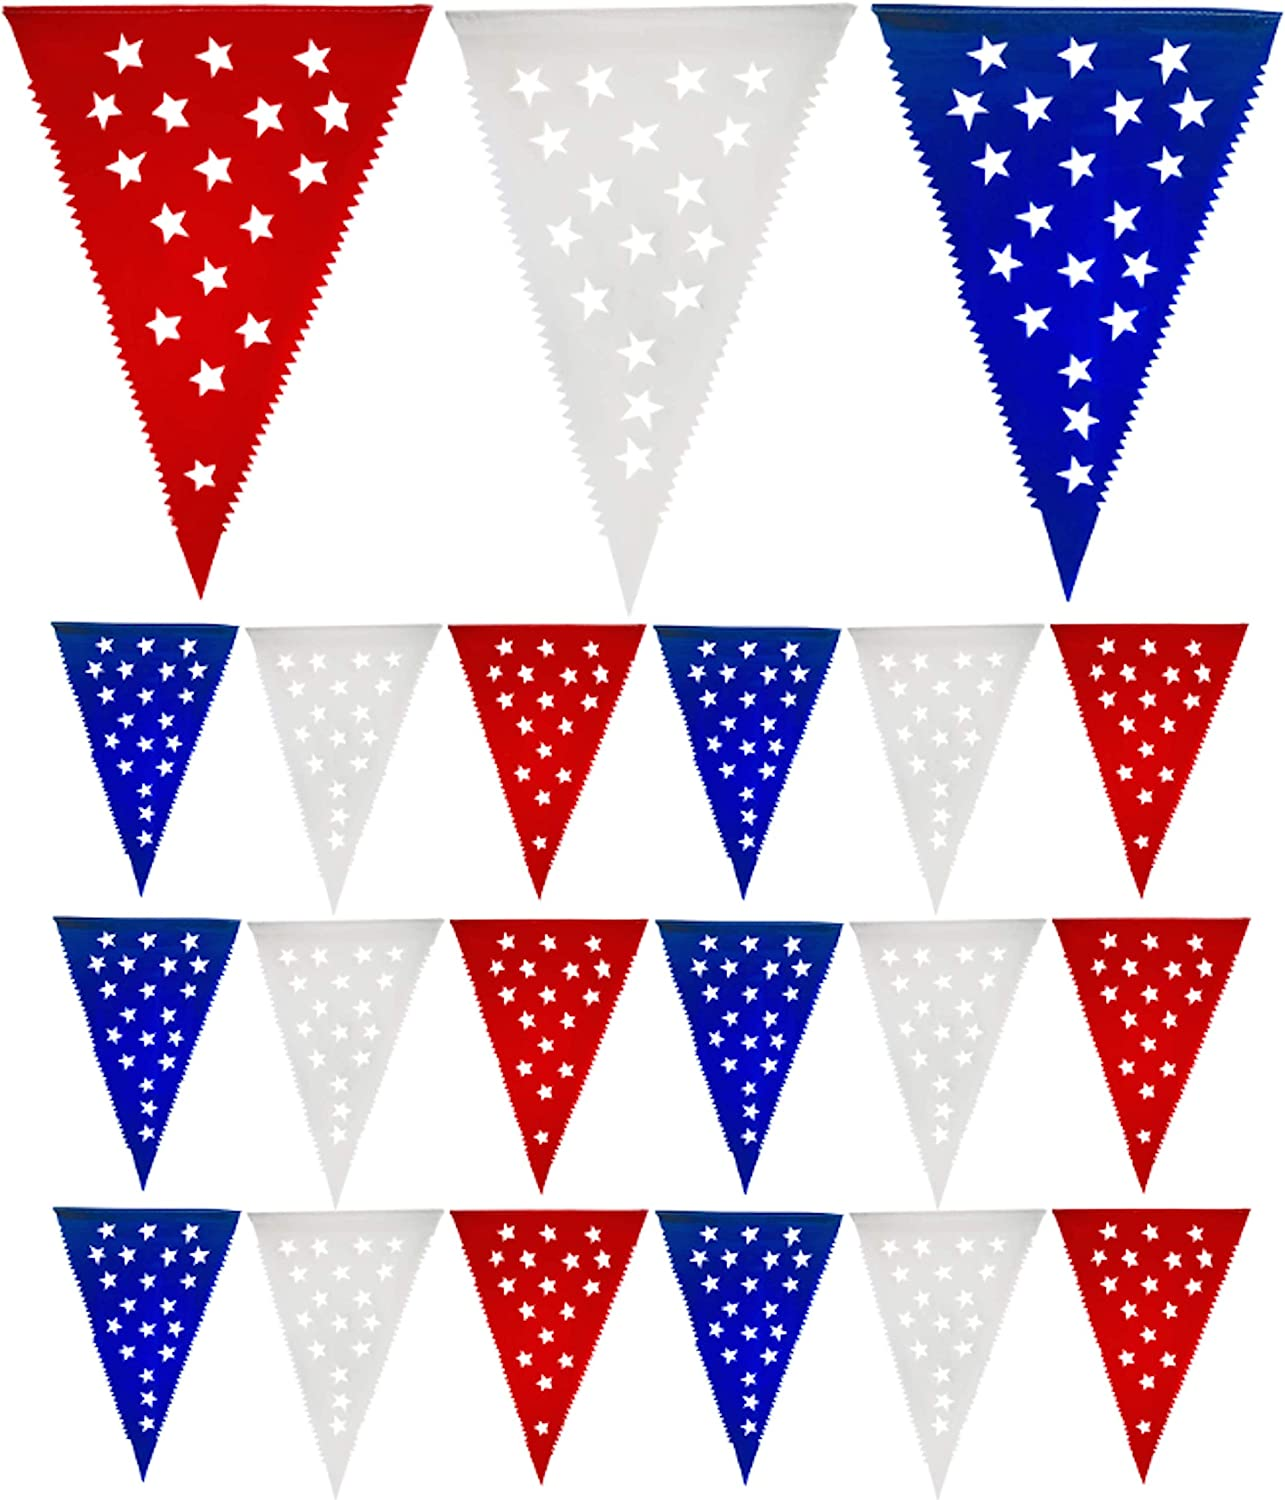 Muunek Patriotic Pennant Banner 4th of July Decoration 18 red White Blue Star Flags 23 ft. Long